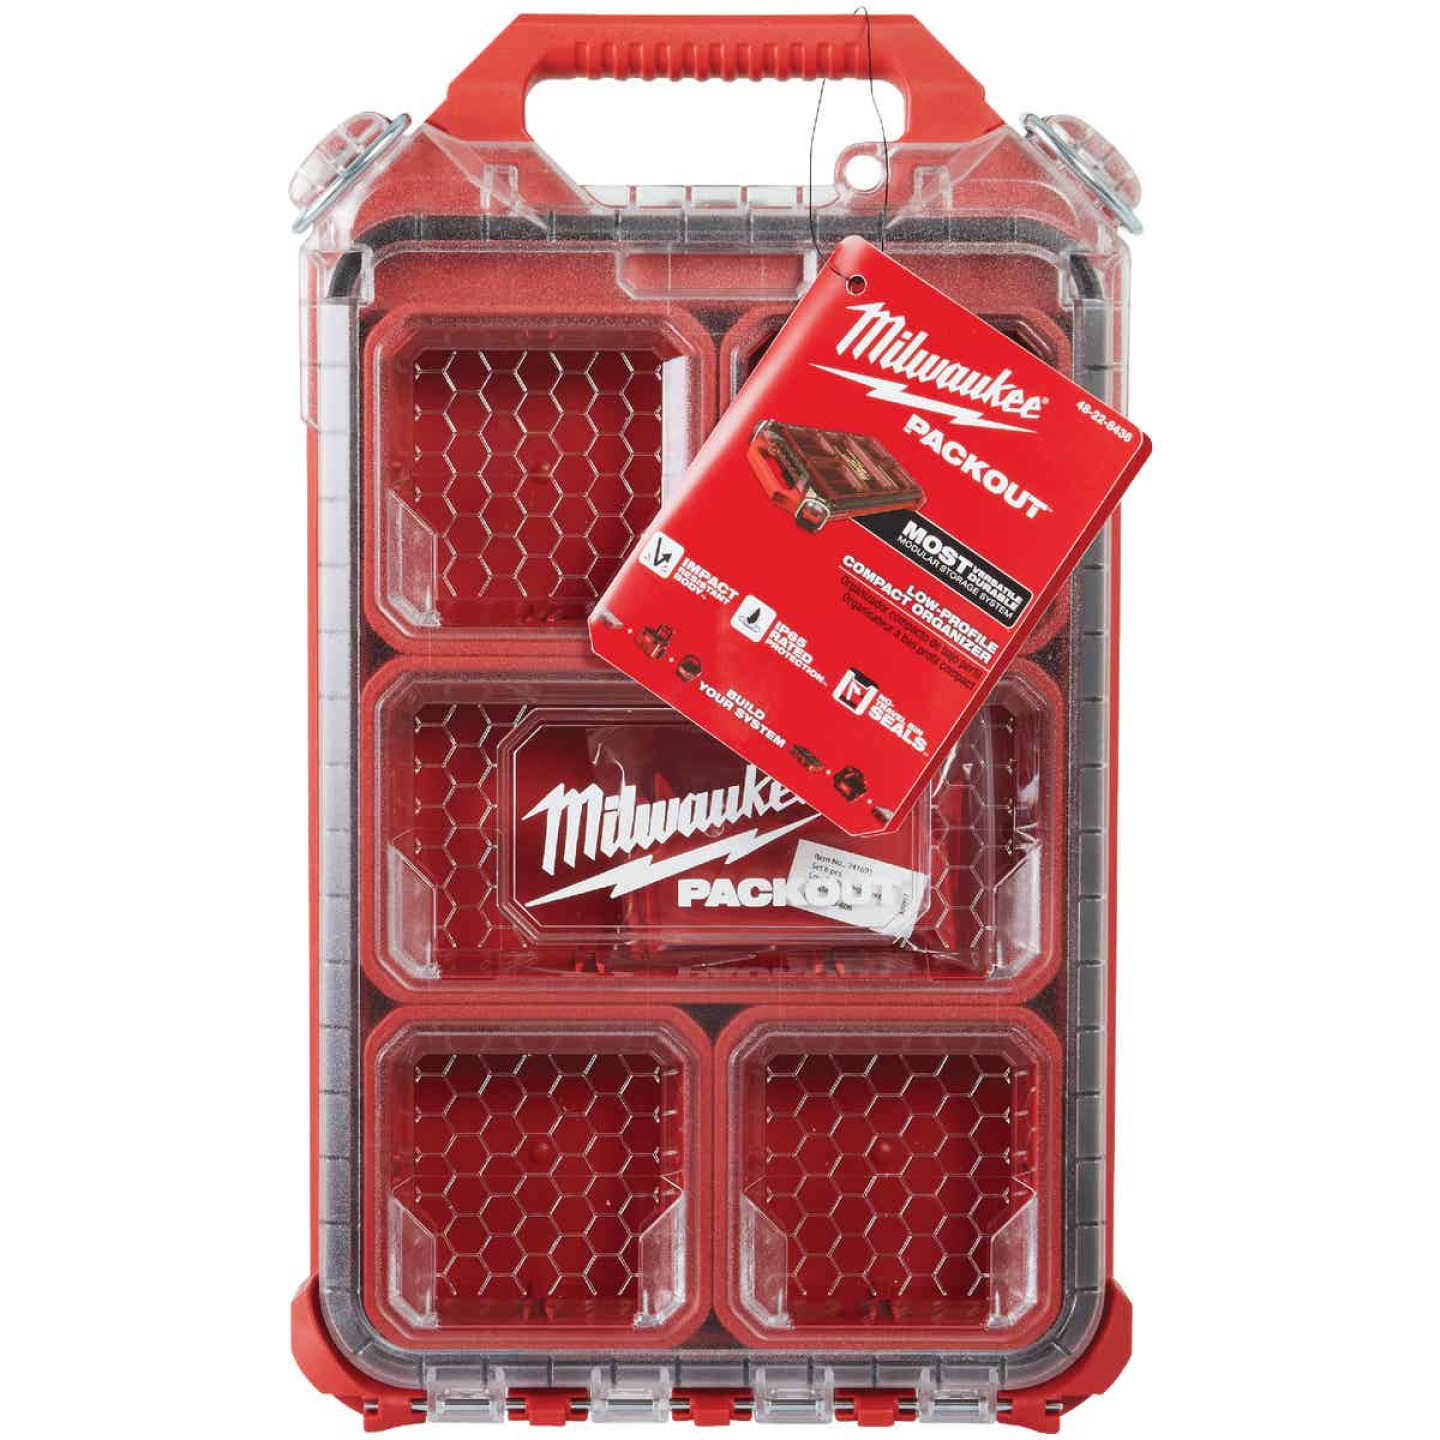 Milwaukee PACKOUT Compact Lo-Profile Small Parts Organizer with 5 Bins Image 2